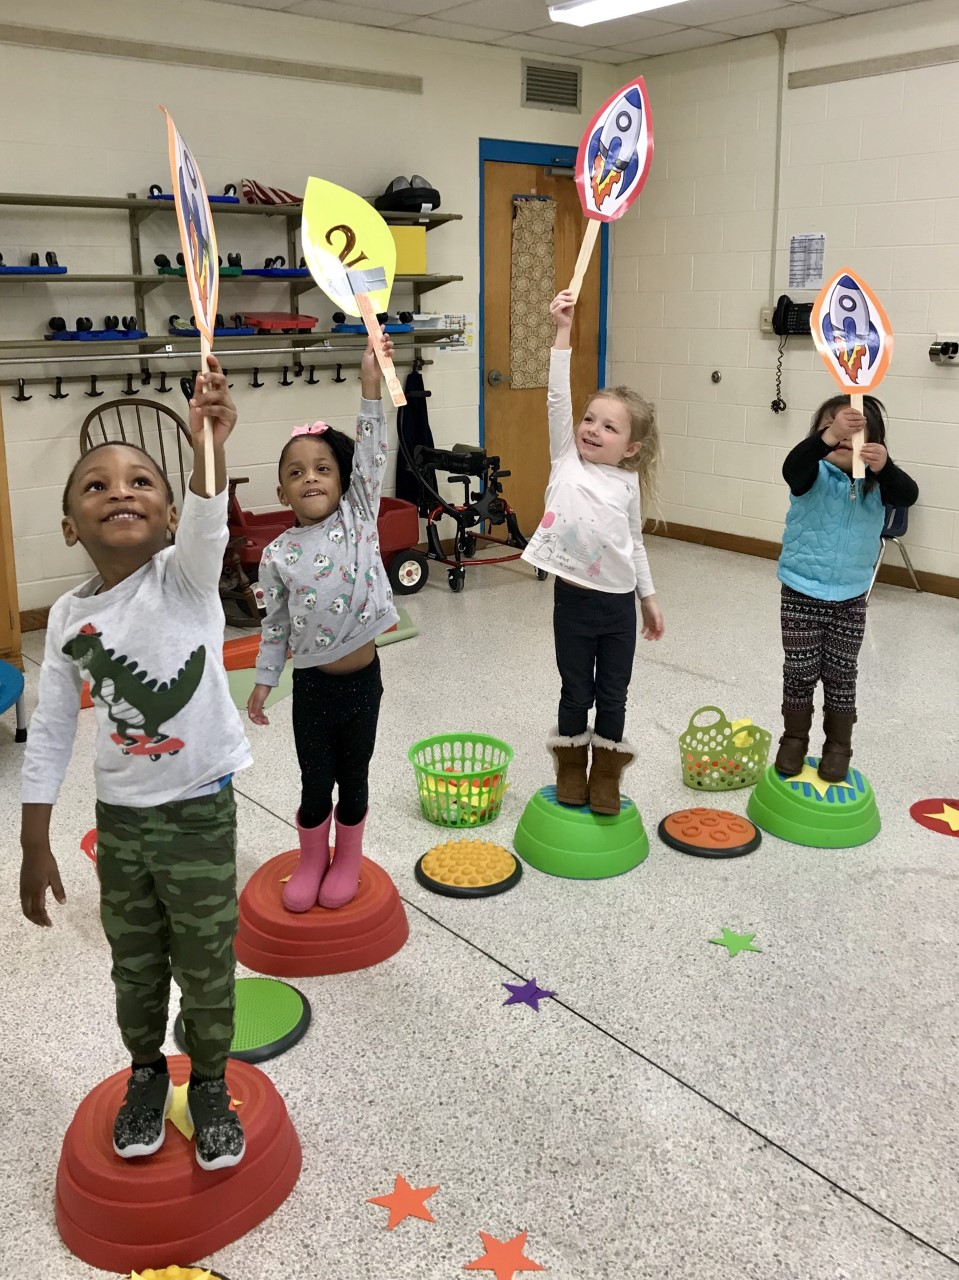 Rosemont Elementary School students Jeffrey Milan, Journey Cole, Emerson Aasen and Allison Sam sent their rockets to the sky.